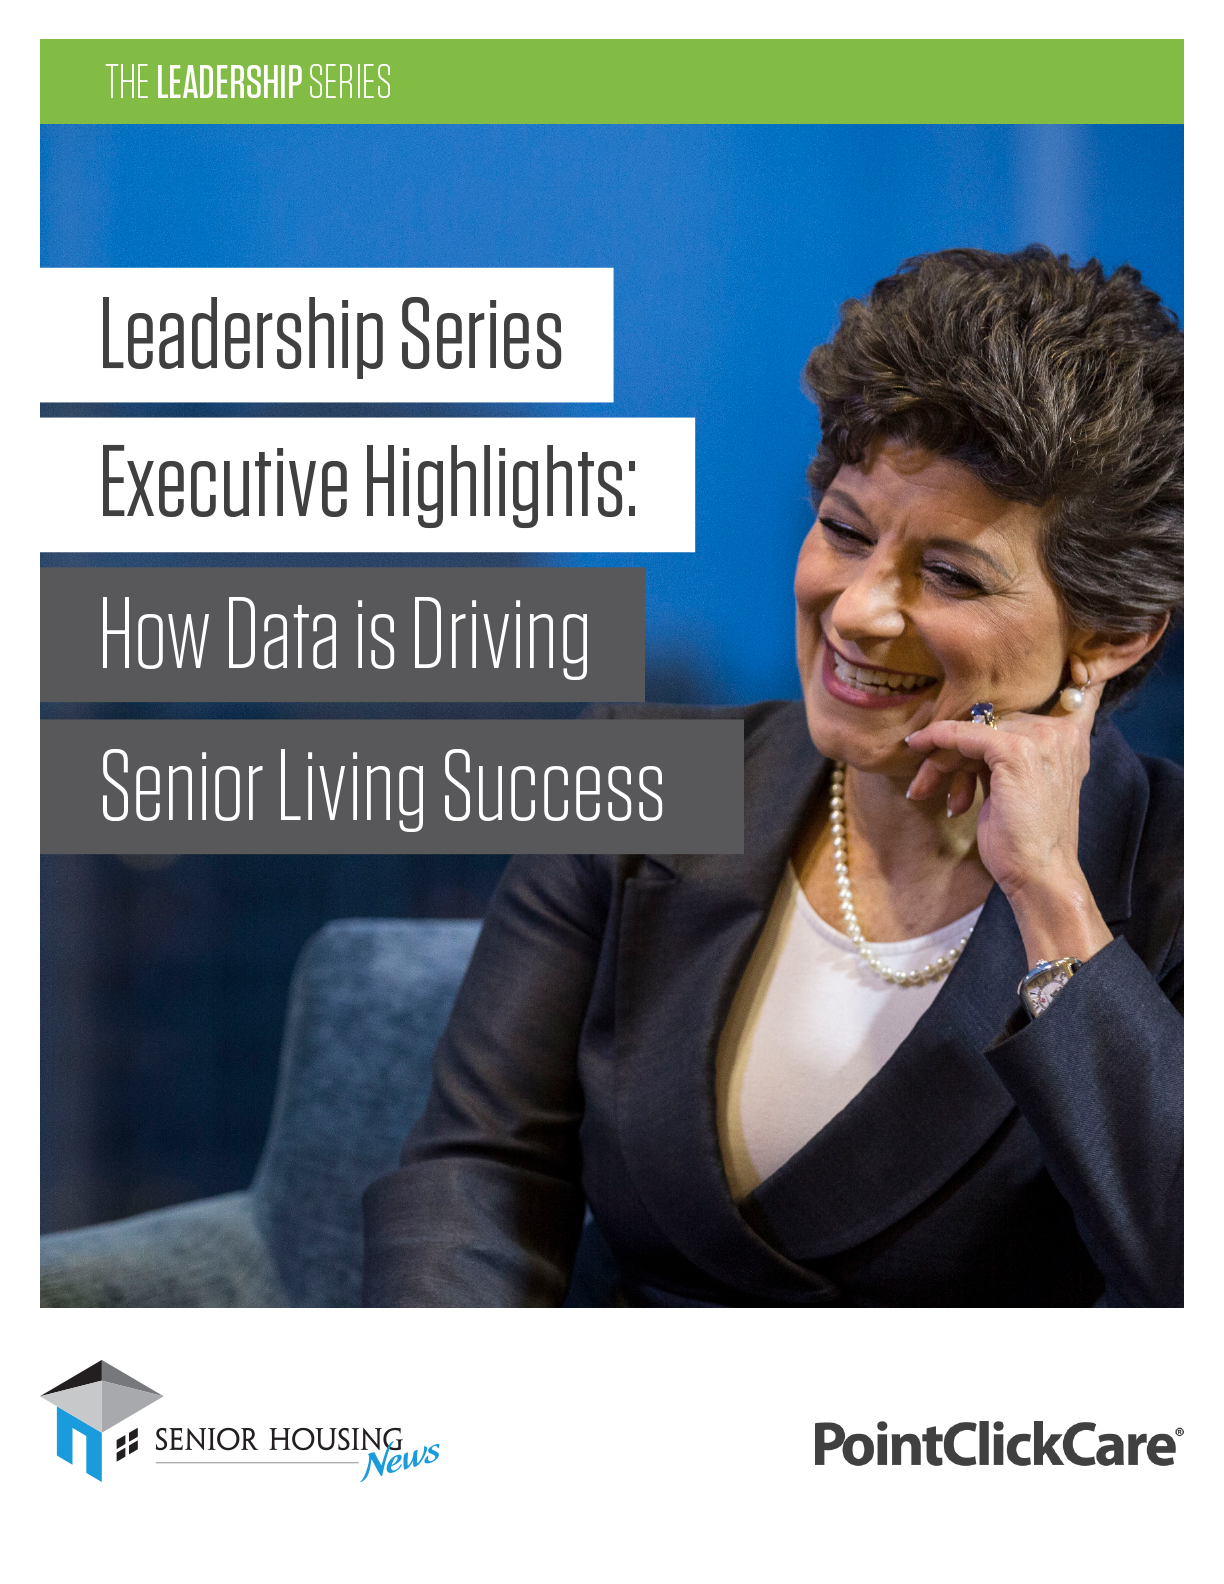 The Leadership Series Executive Highlights: How Data is Driving Senior Living Success